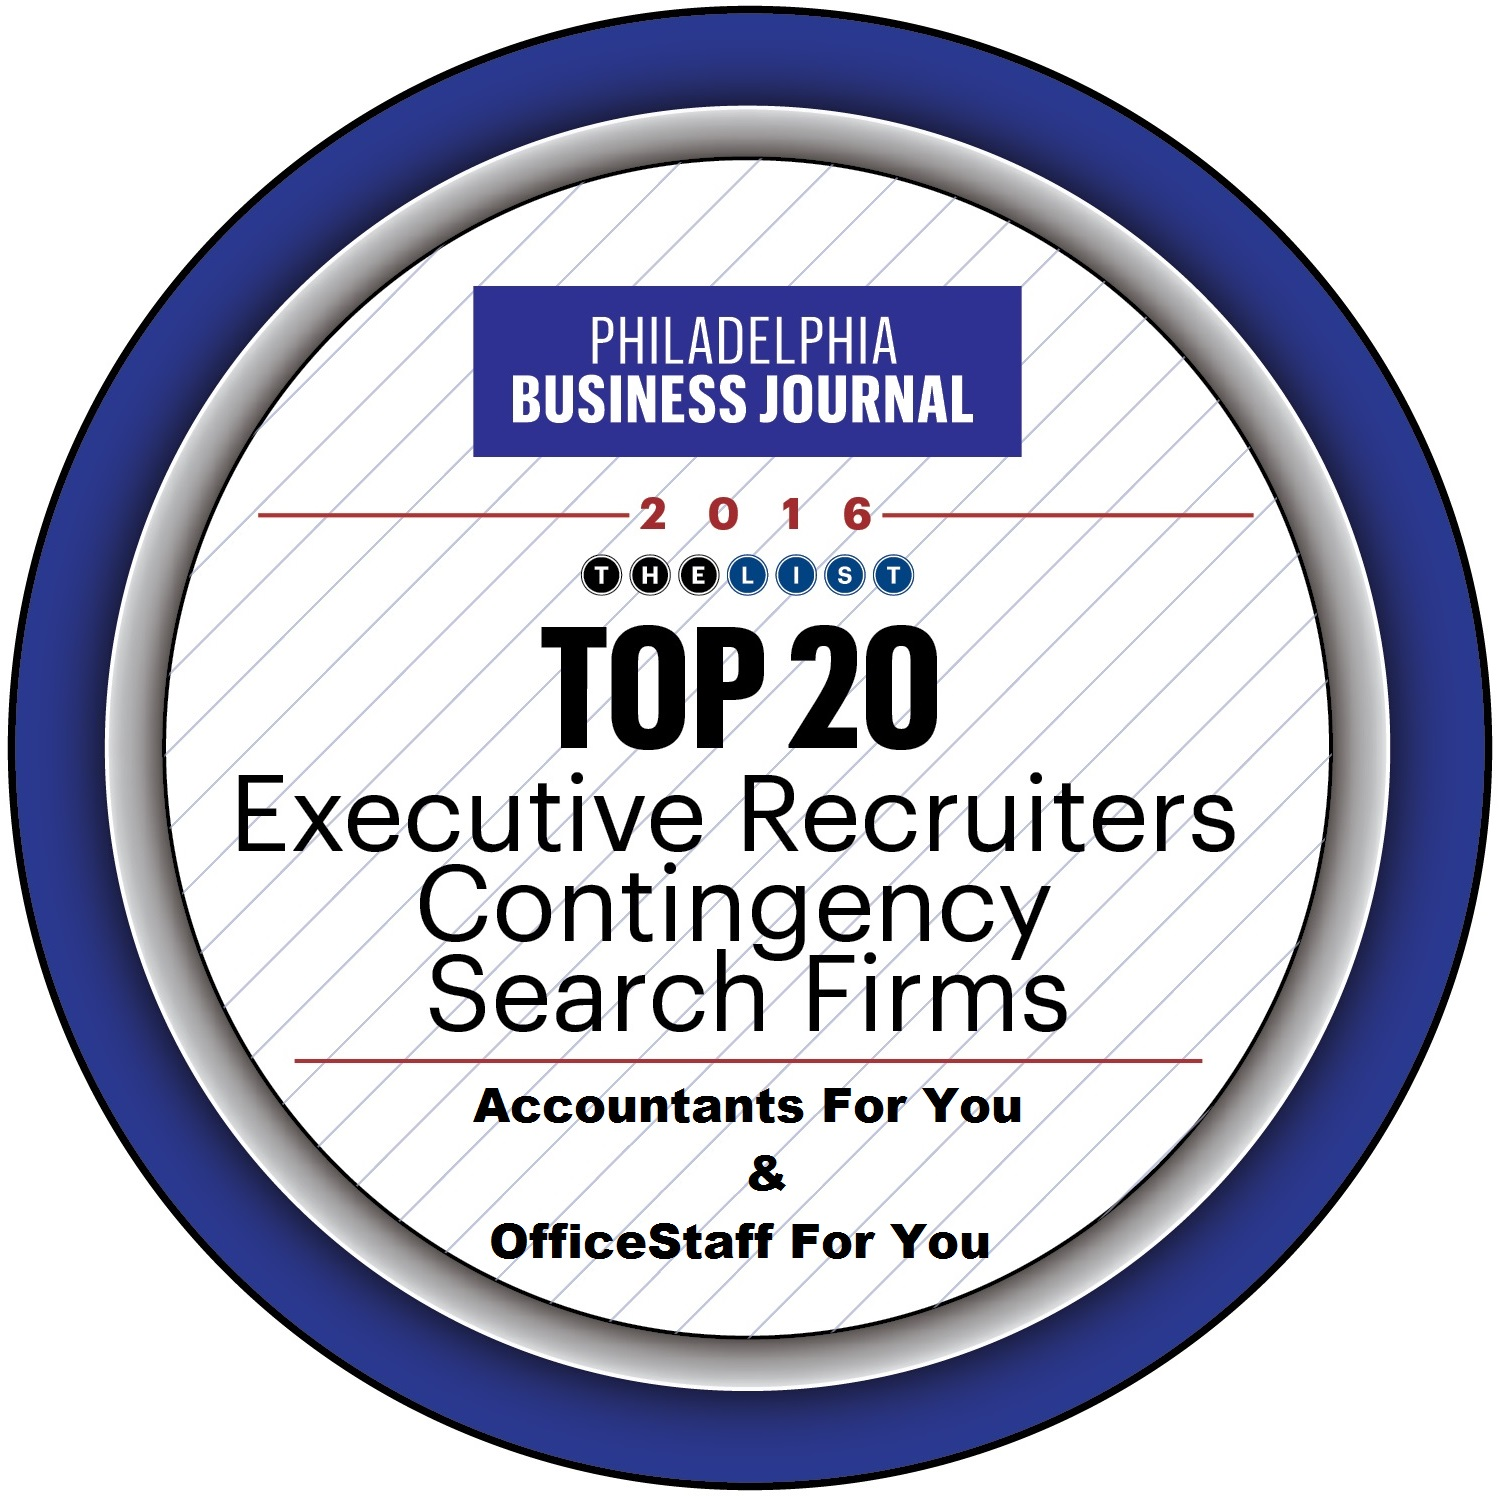 2016 Top Recruiters List AFY cropped